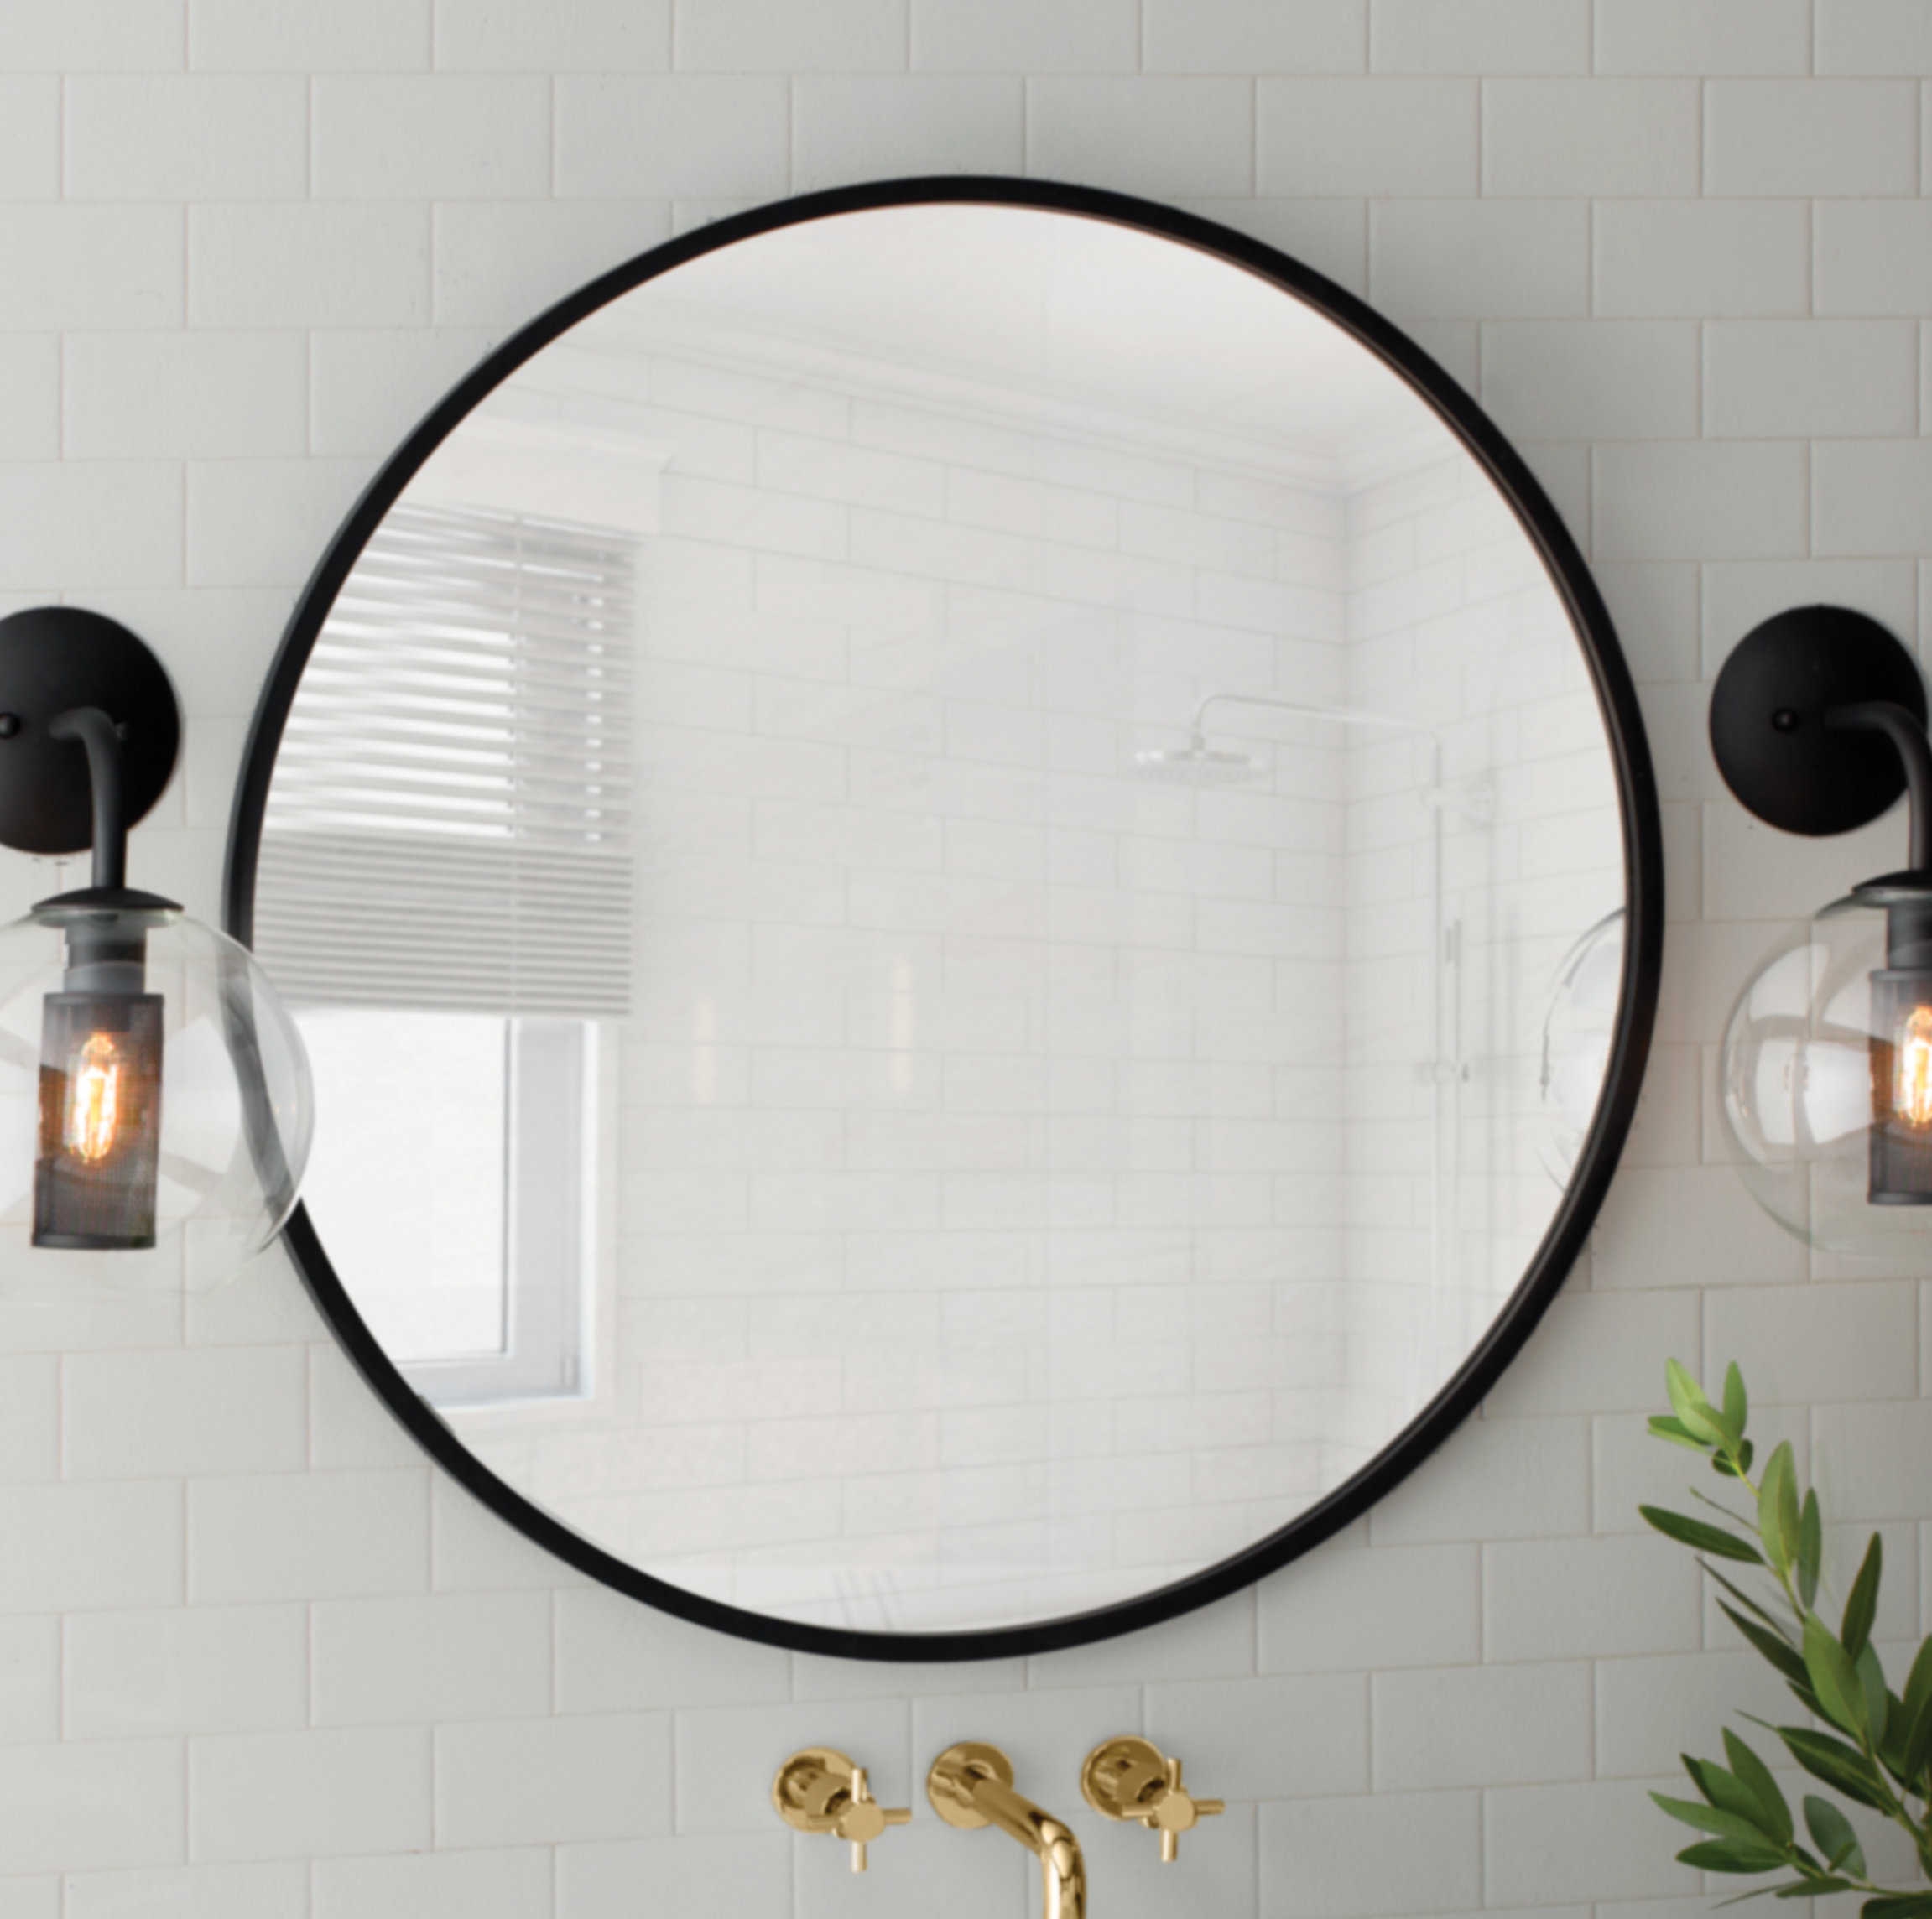 Hub Modern And Contemporary Accent Mirror Within Needville Modern & Contemporary Accent Mirrors (Image 5 of 20)